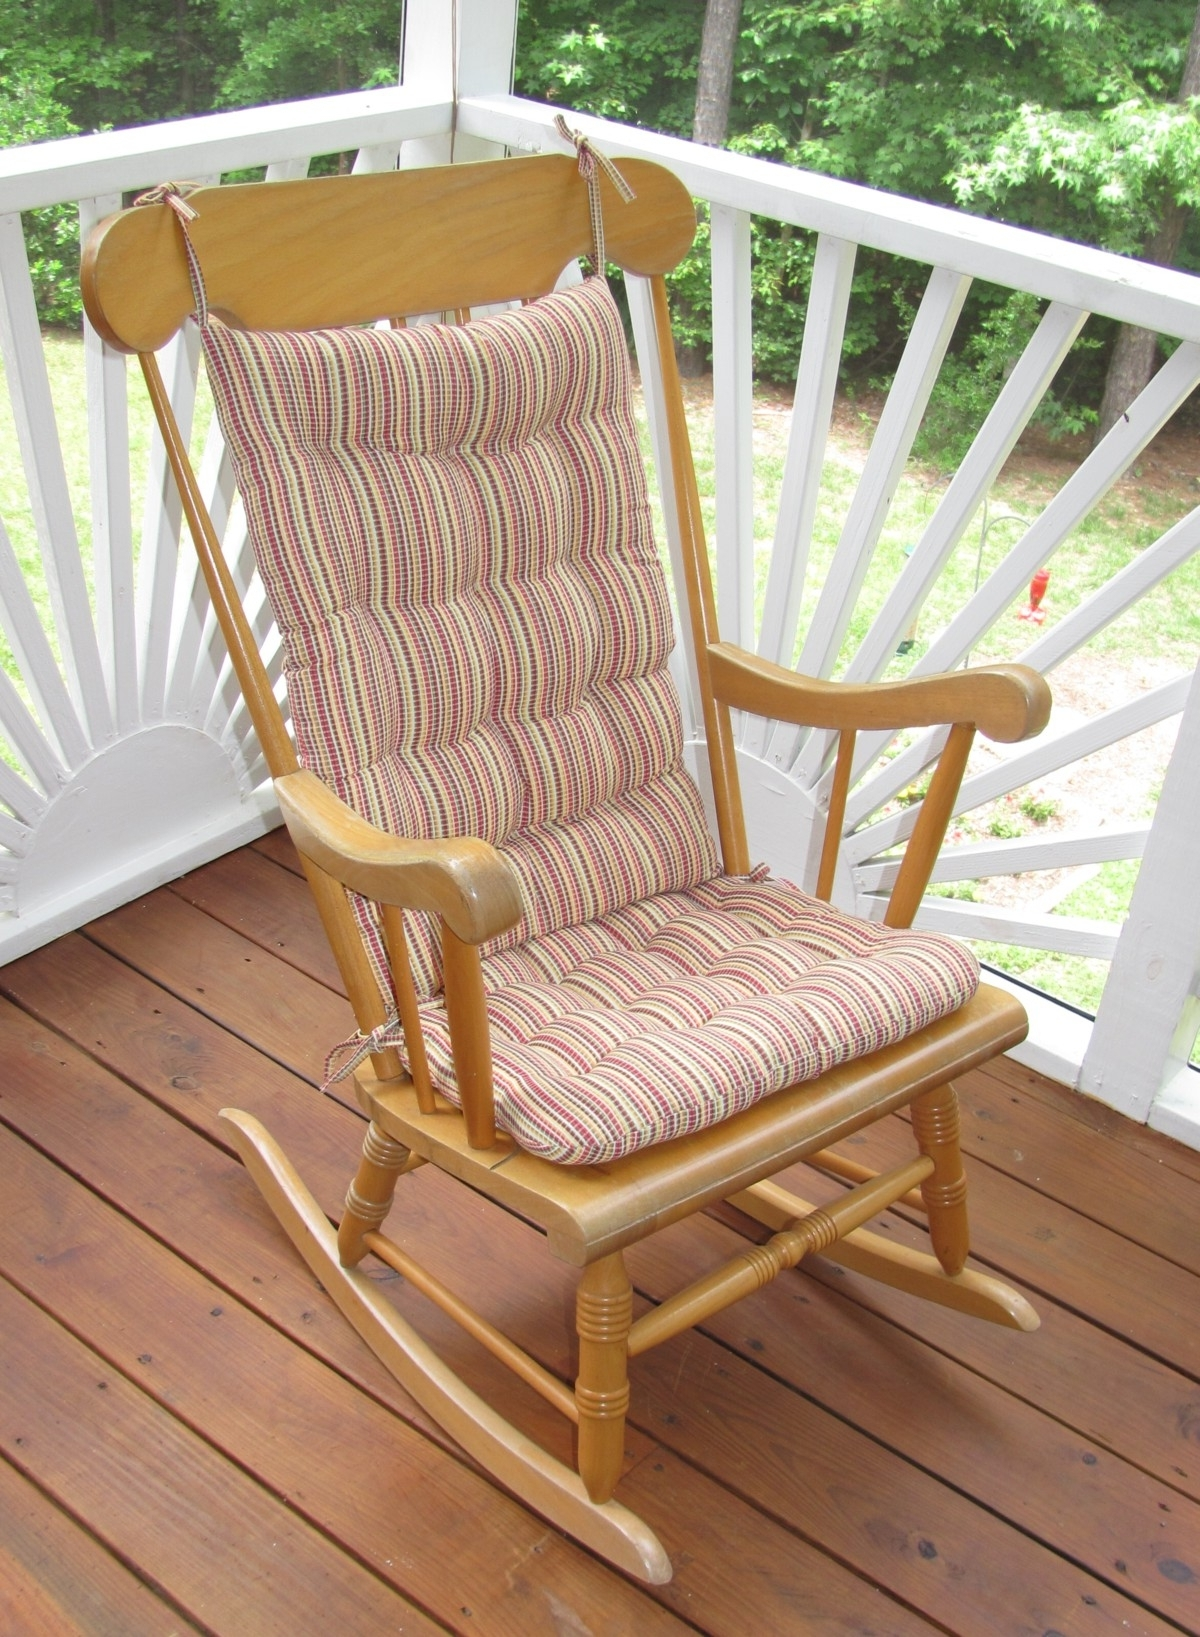 Most Popular Outdoor Rocking Chair Cushions Strip : Beautiful Outdoor Rocking In Rocking Chair Cushions For Outdoor (View 3 of 15)